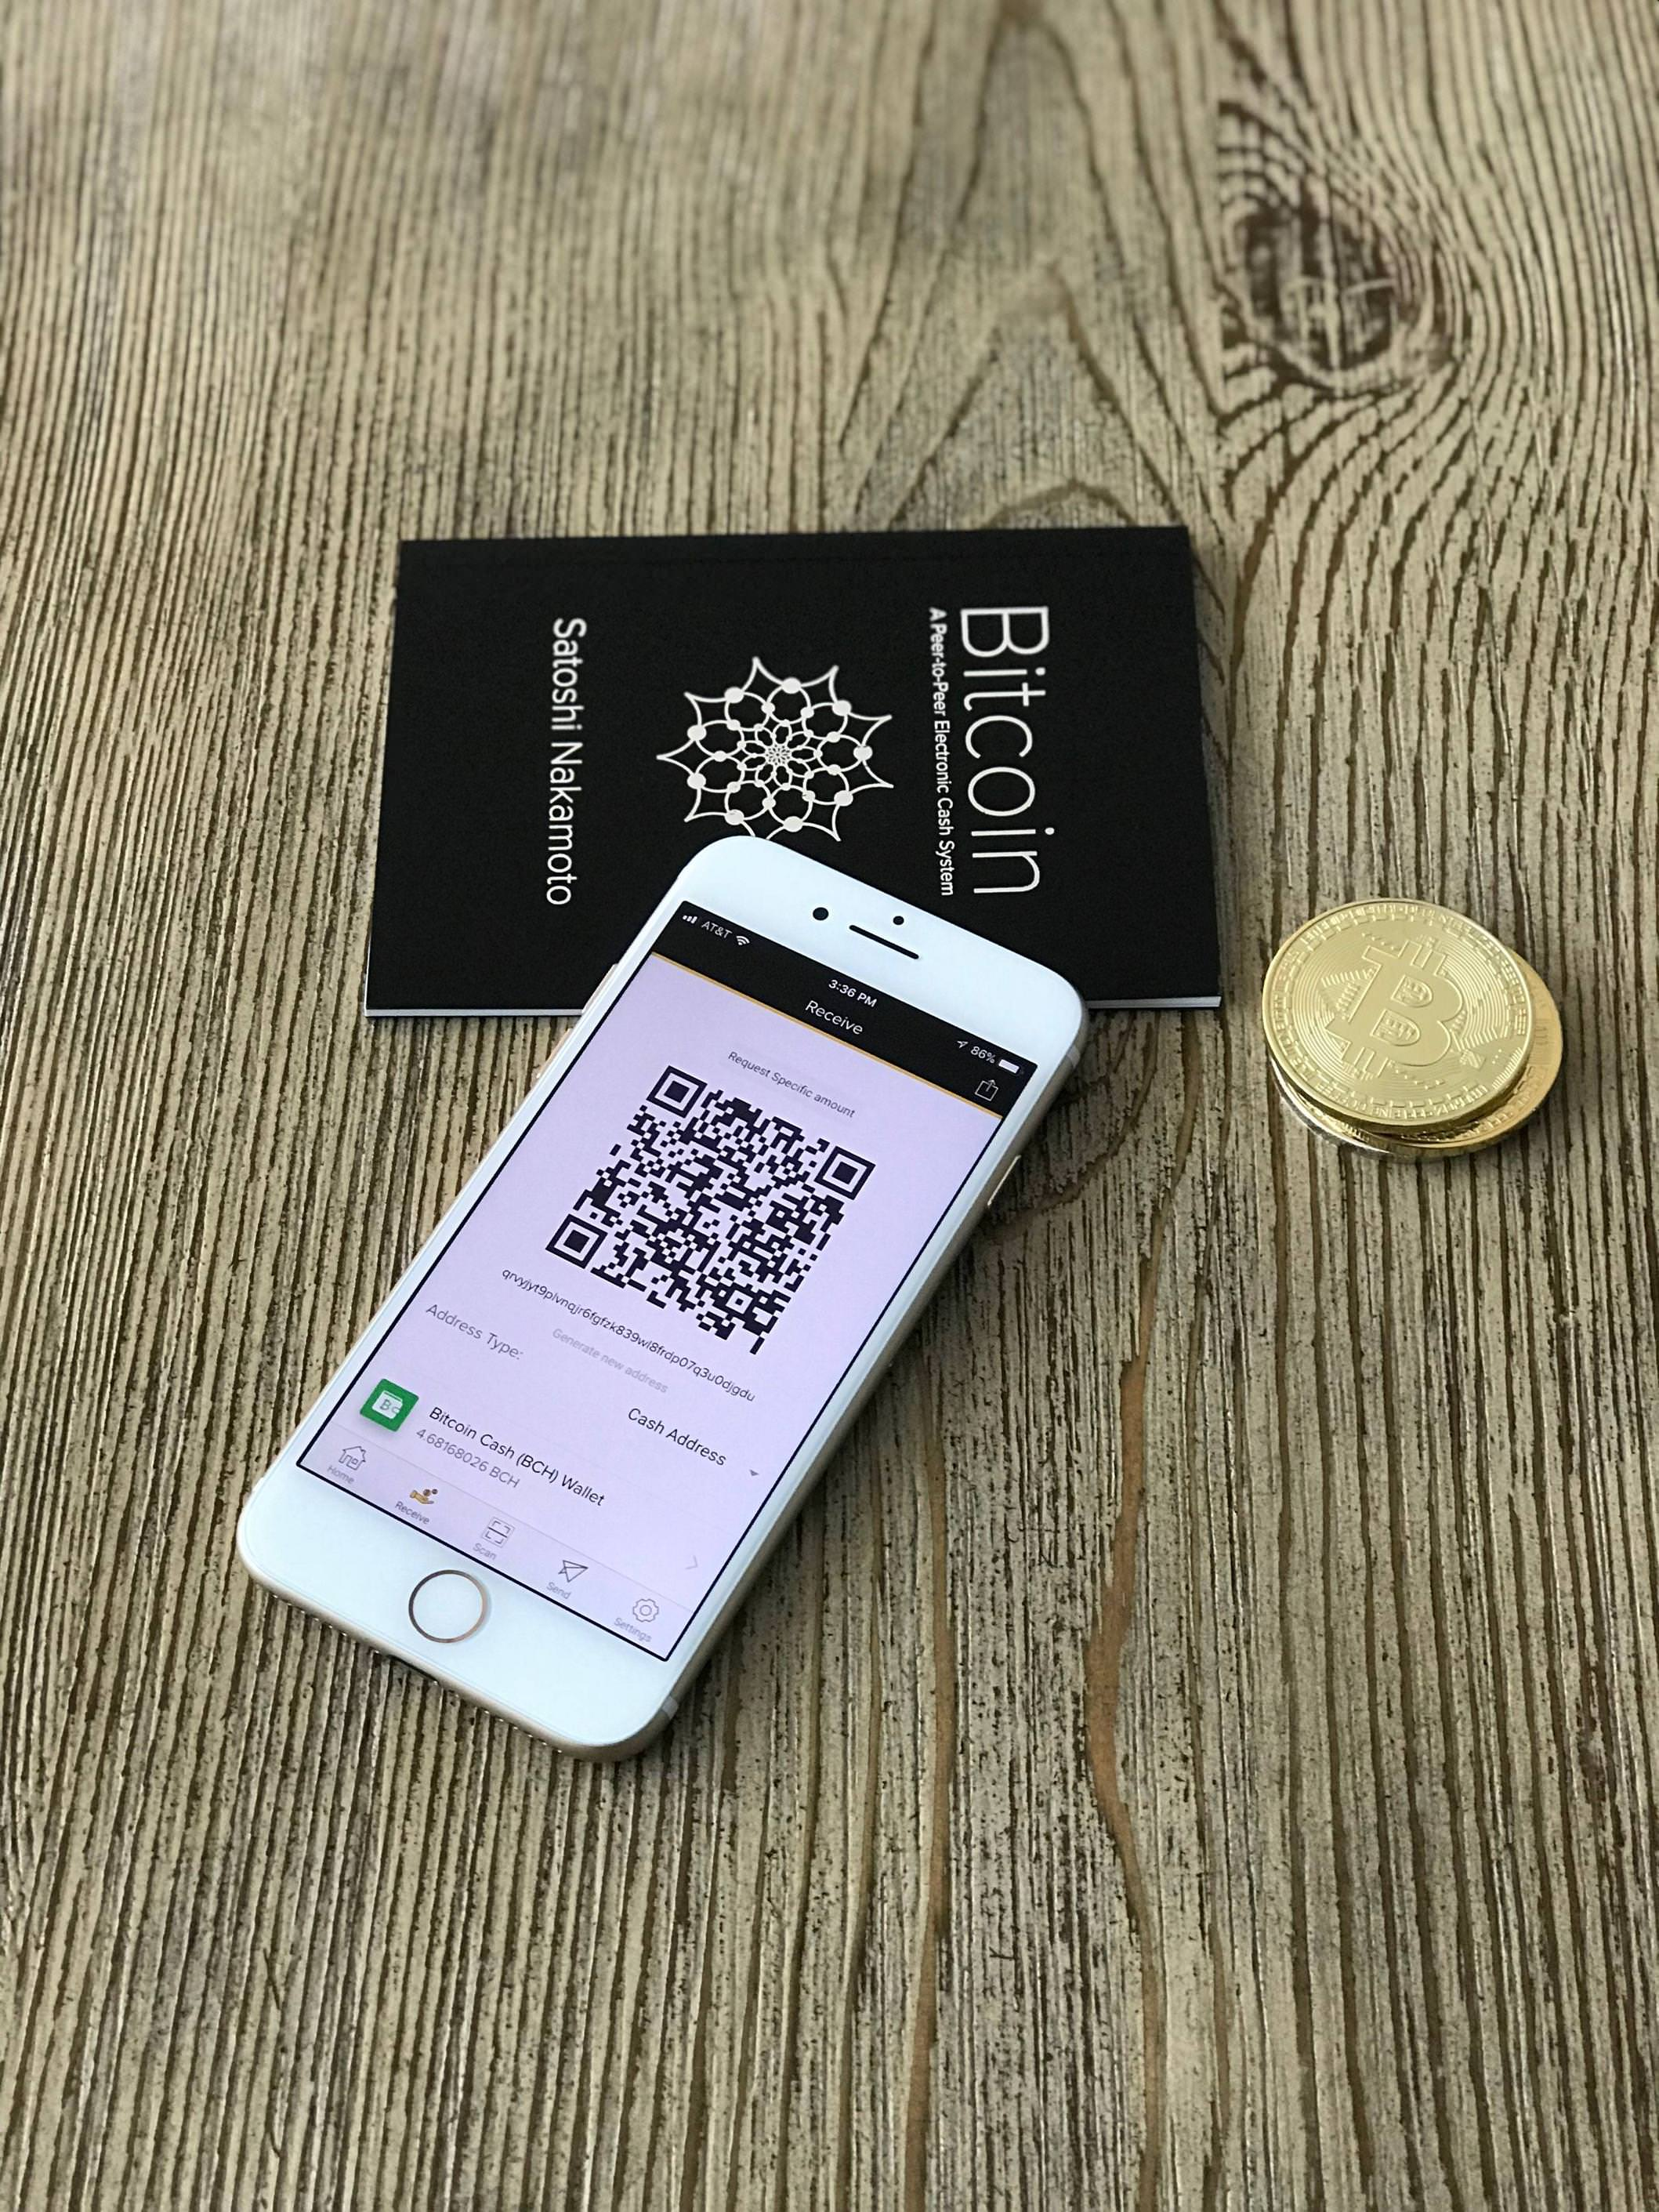 Bitcoin Cash wallet and whitepaper 2.jpg English: Photo of a mobile phone displaying a Bitcoin Cash wallet and a copy of Bitcoin A Peer-to-Peer